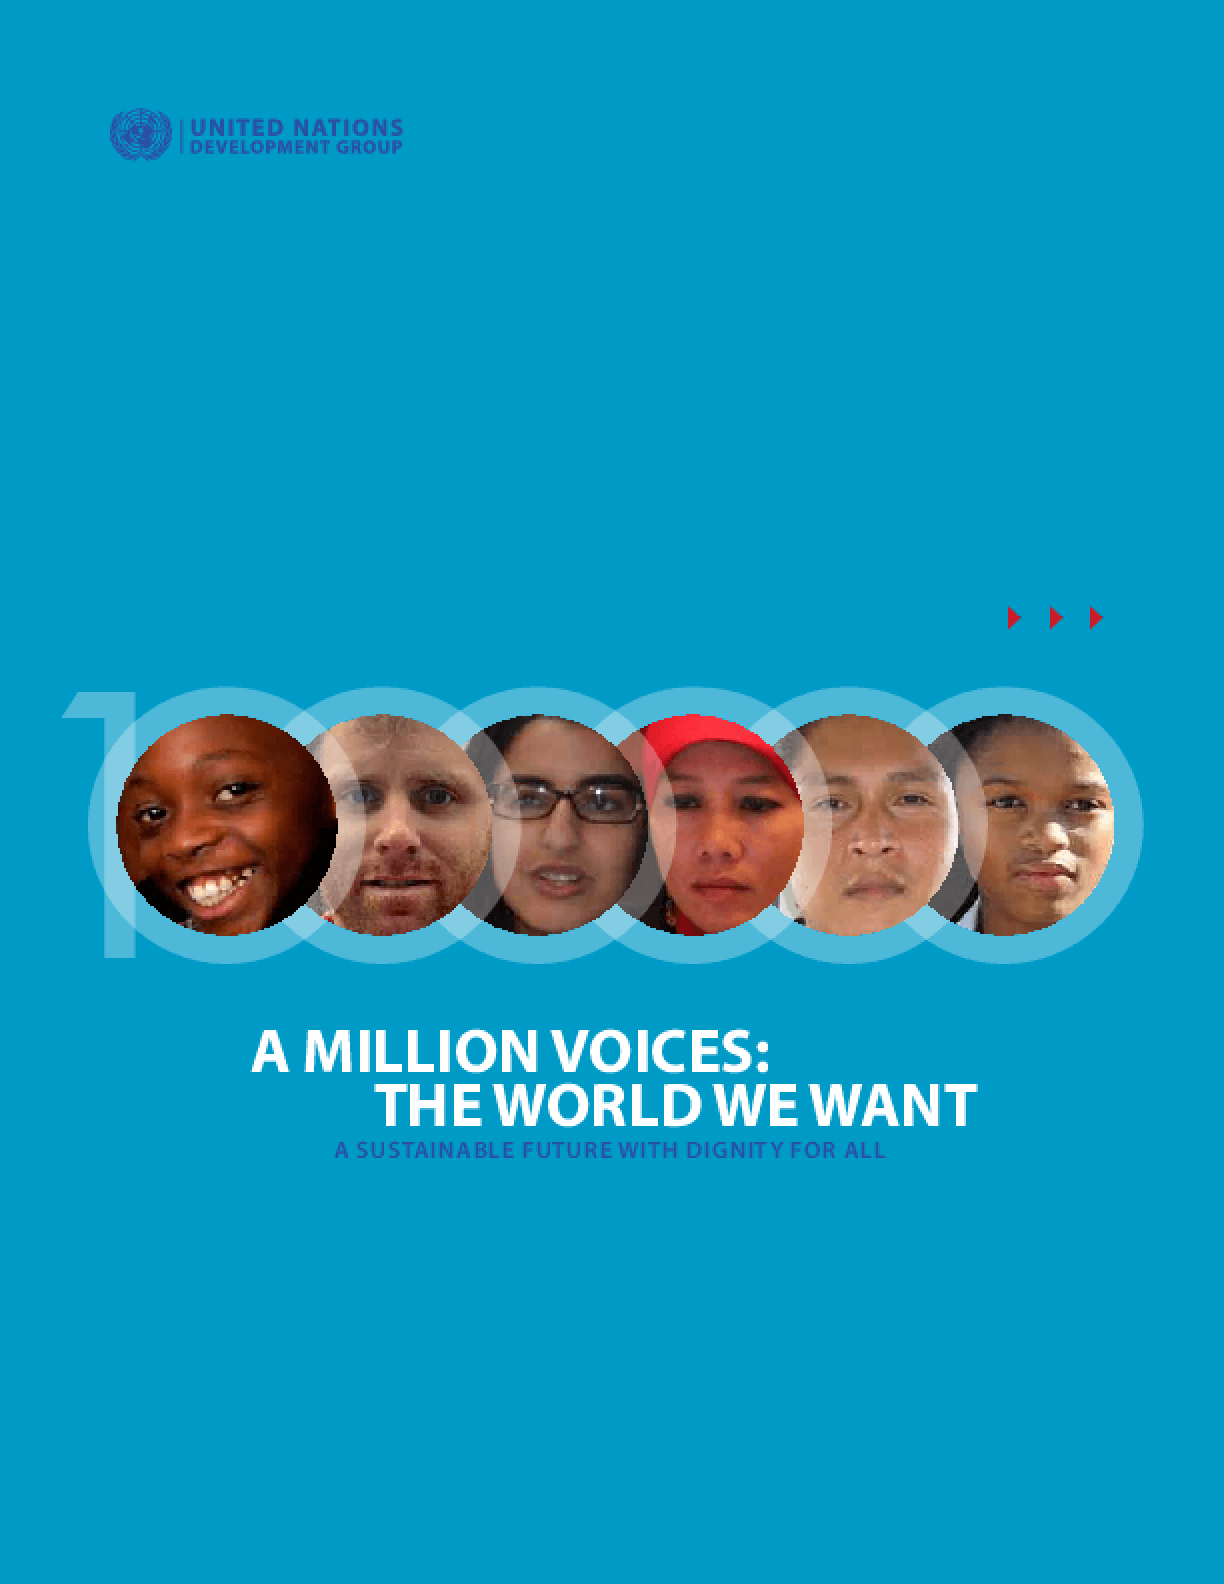 A Million Voices: The World We Want? A Sustainable Future with Dignity for All